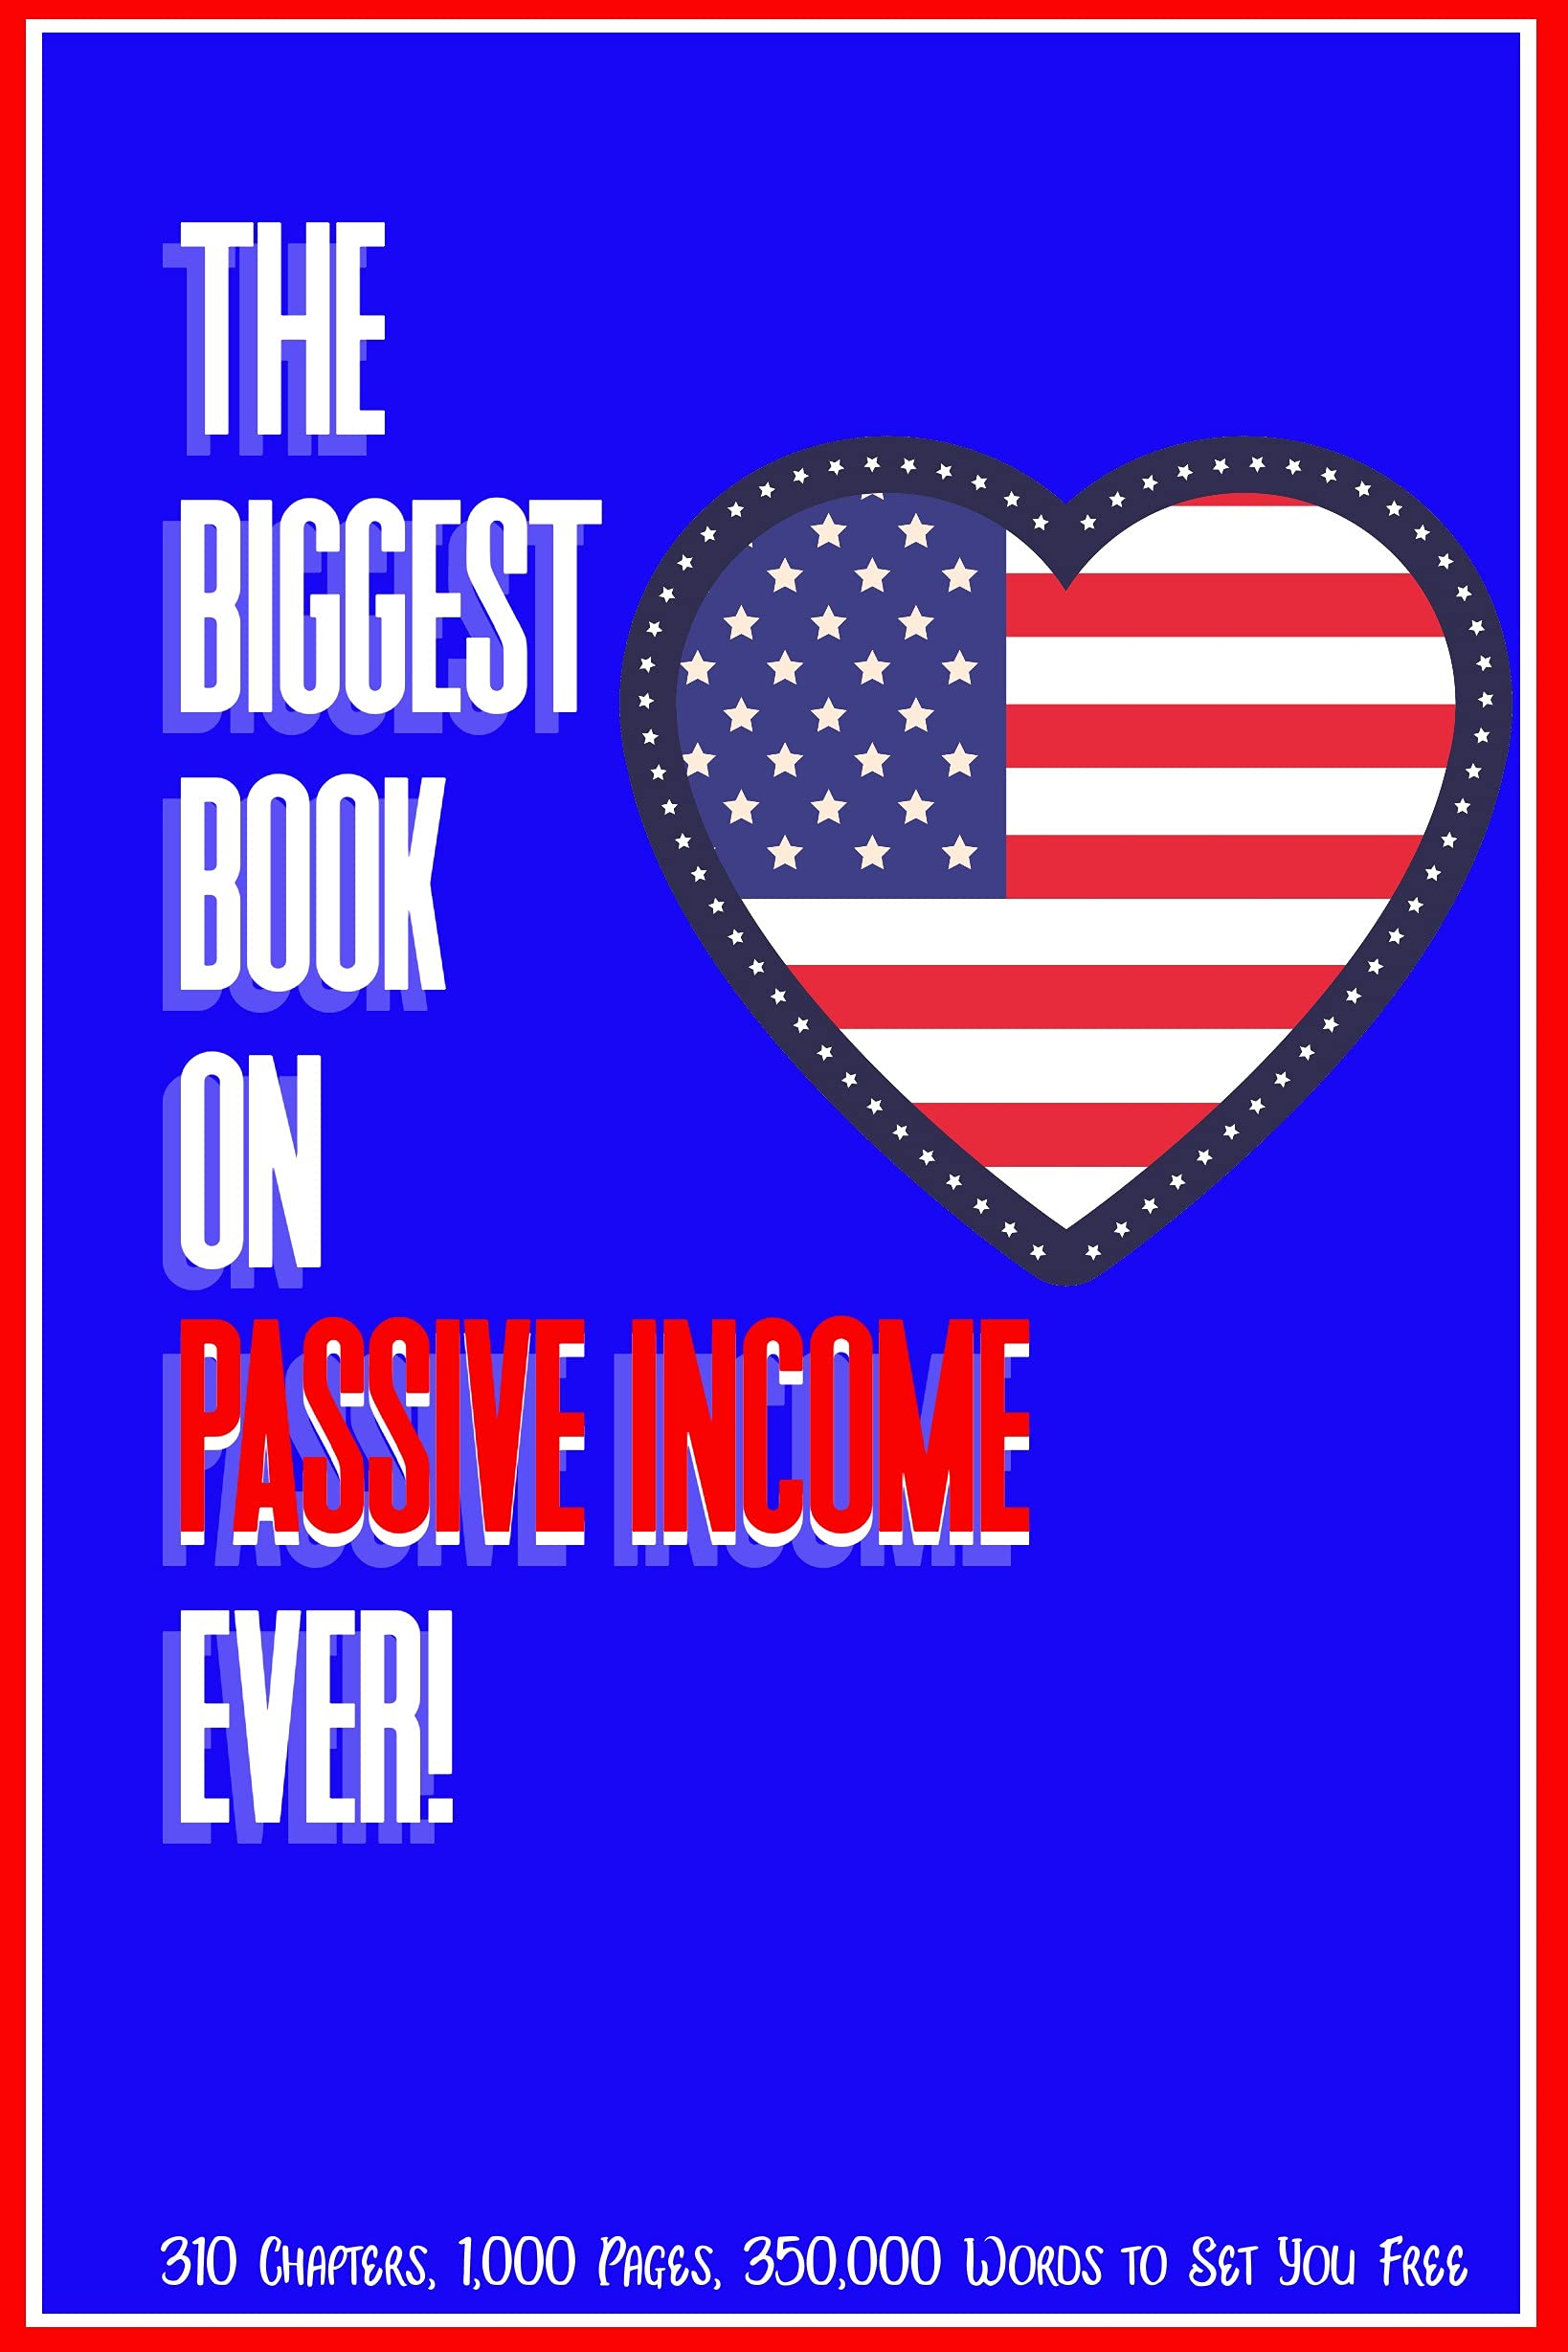 The Biggest Book on Passive Income Ever!: 310 Chapters, 1,000 Pages, and 350,000 Words to Set You Free (Massive Passive Income Books 1)